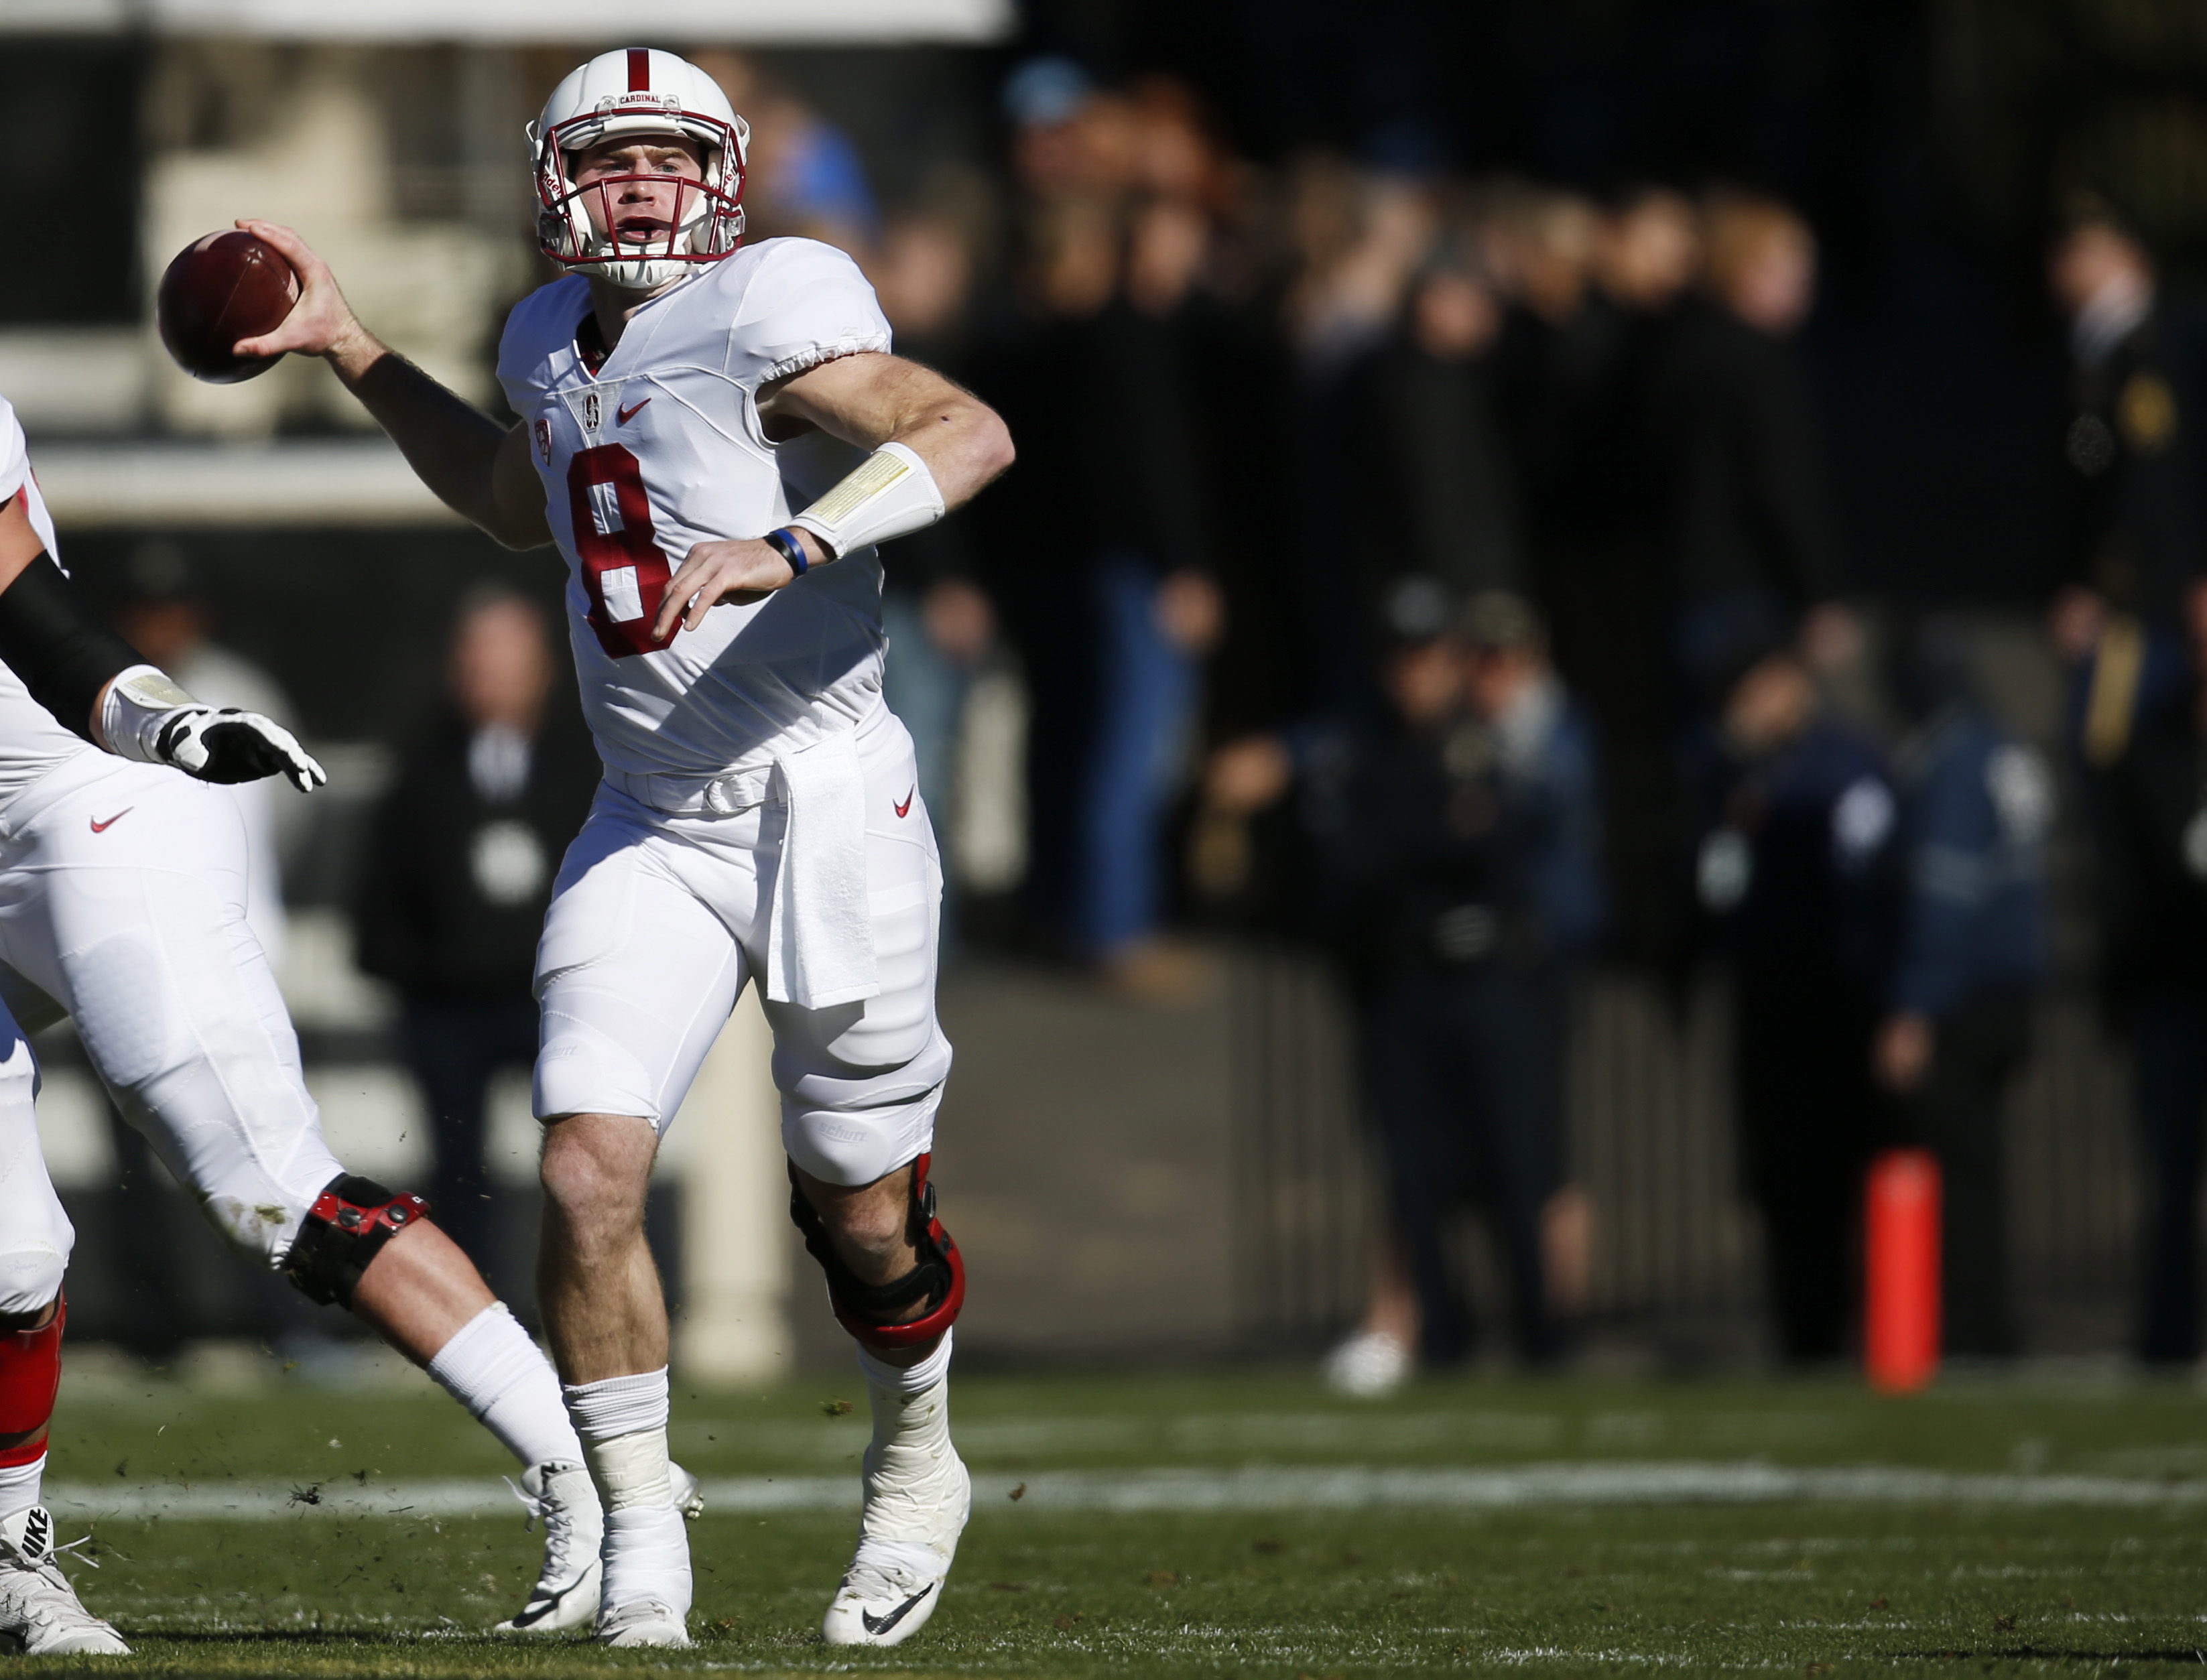 Stanford quarterback Kevin Hogan throws a pass against Colorado in the first half of an NCAA football game Saturday, Nov. 7, 2015, in Boulder, Colo. (AP Photo/David Zalubowski)